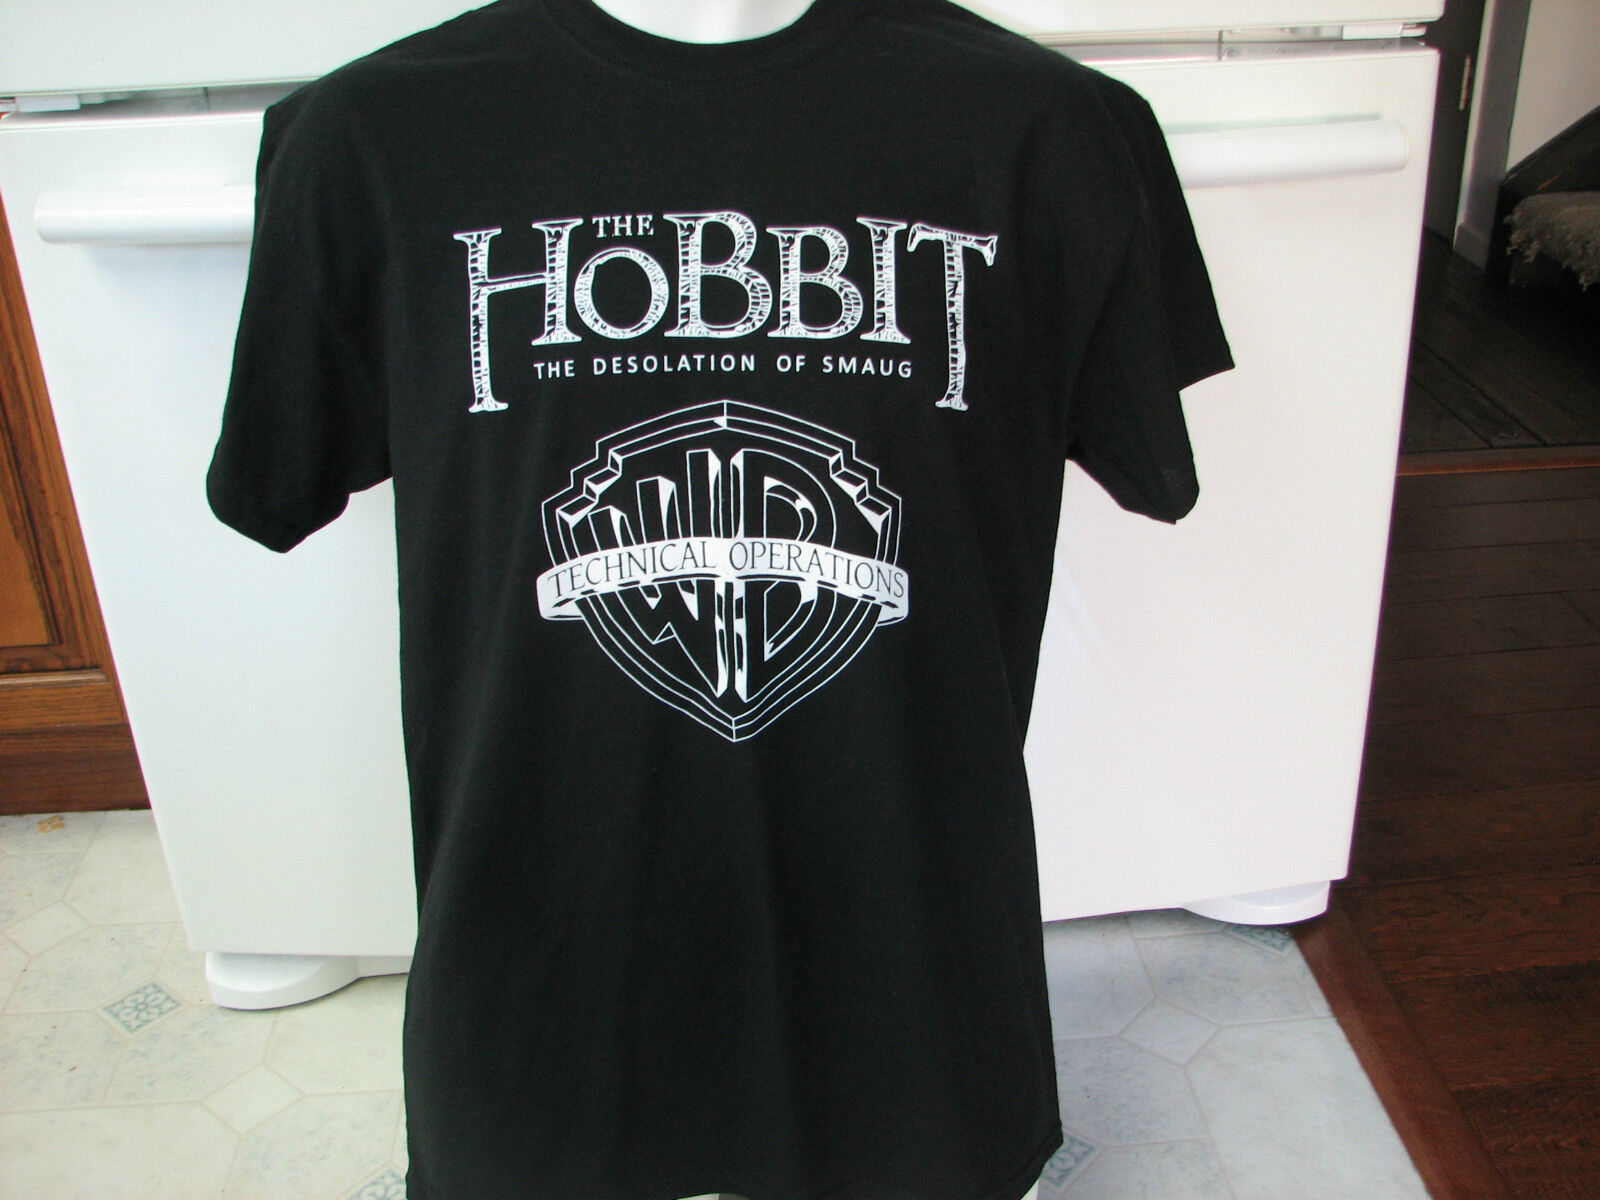 The Hobbit desolation of smaug Technical operations WB t shirt Event Staff